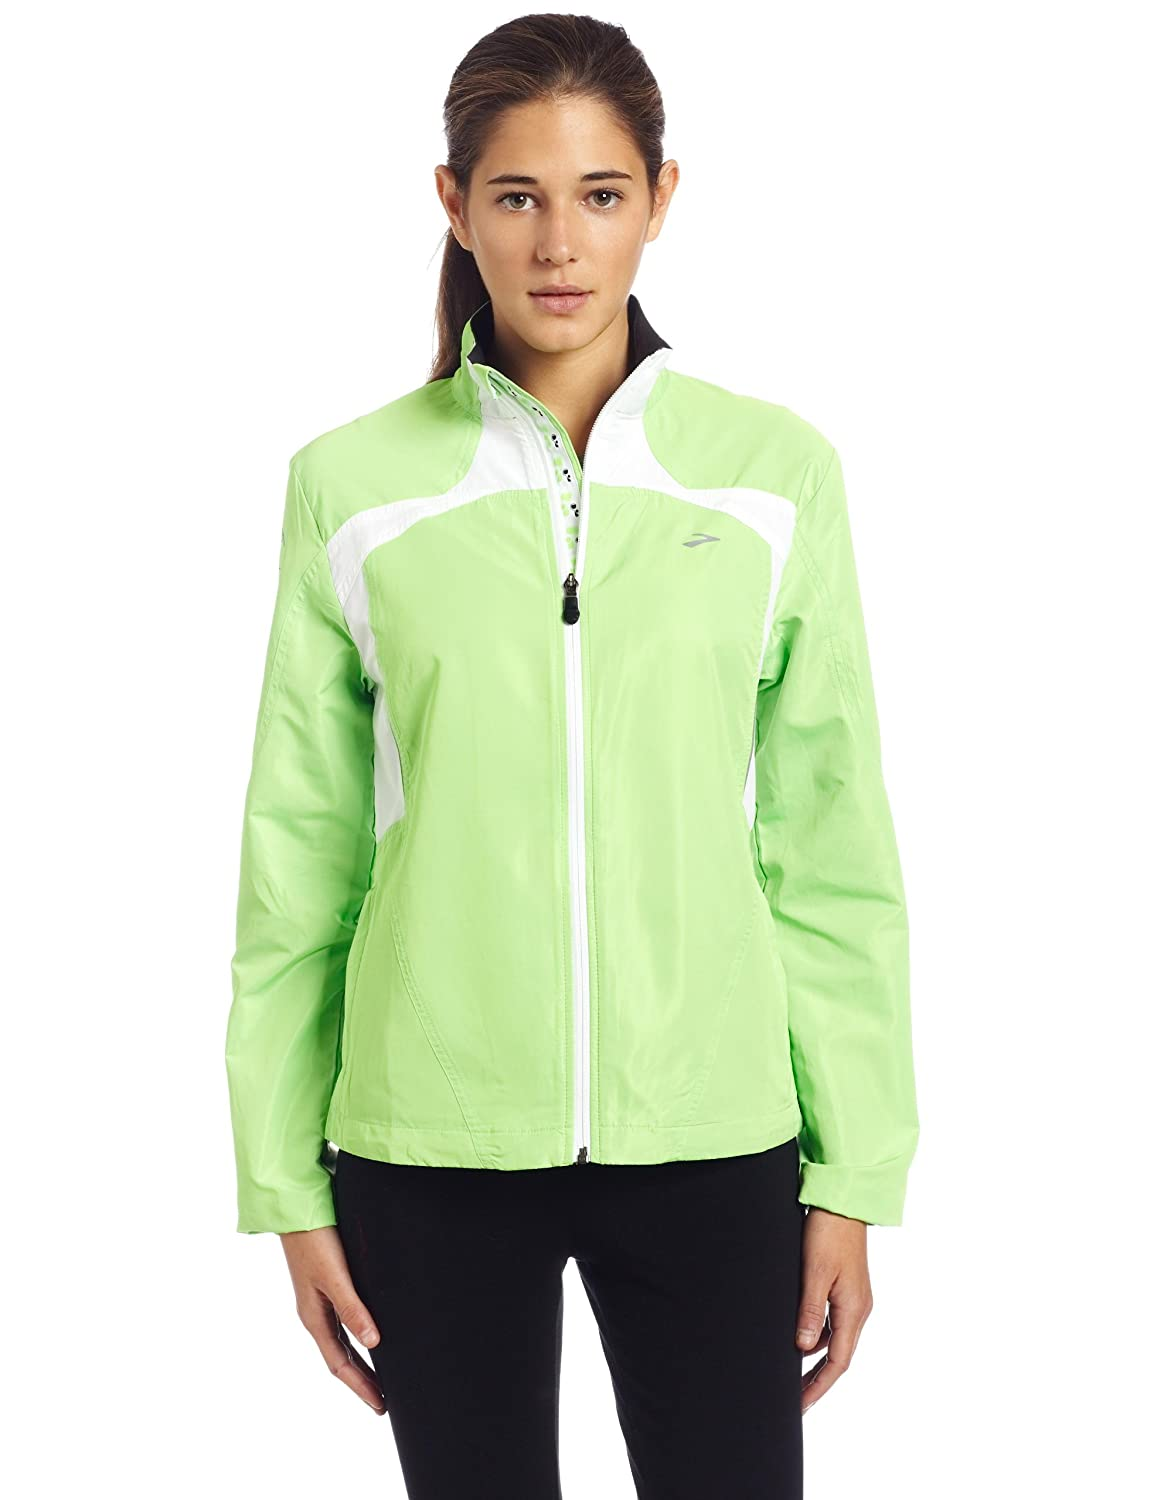 Brooks Women's Essential Running Jacket,Brite Green/Brite White,Small